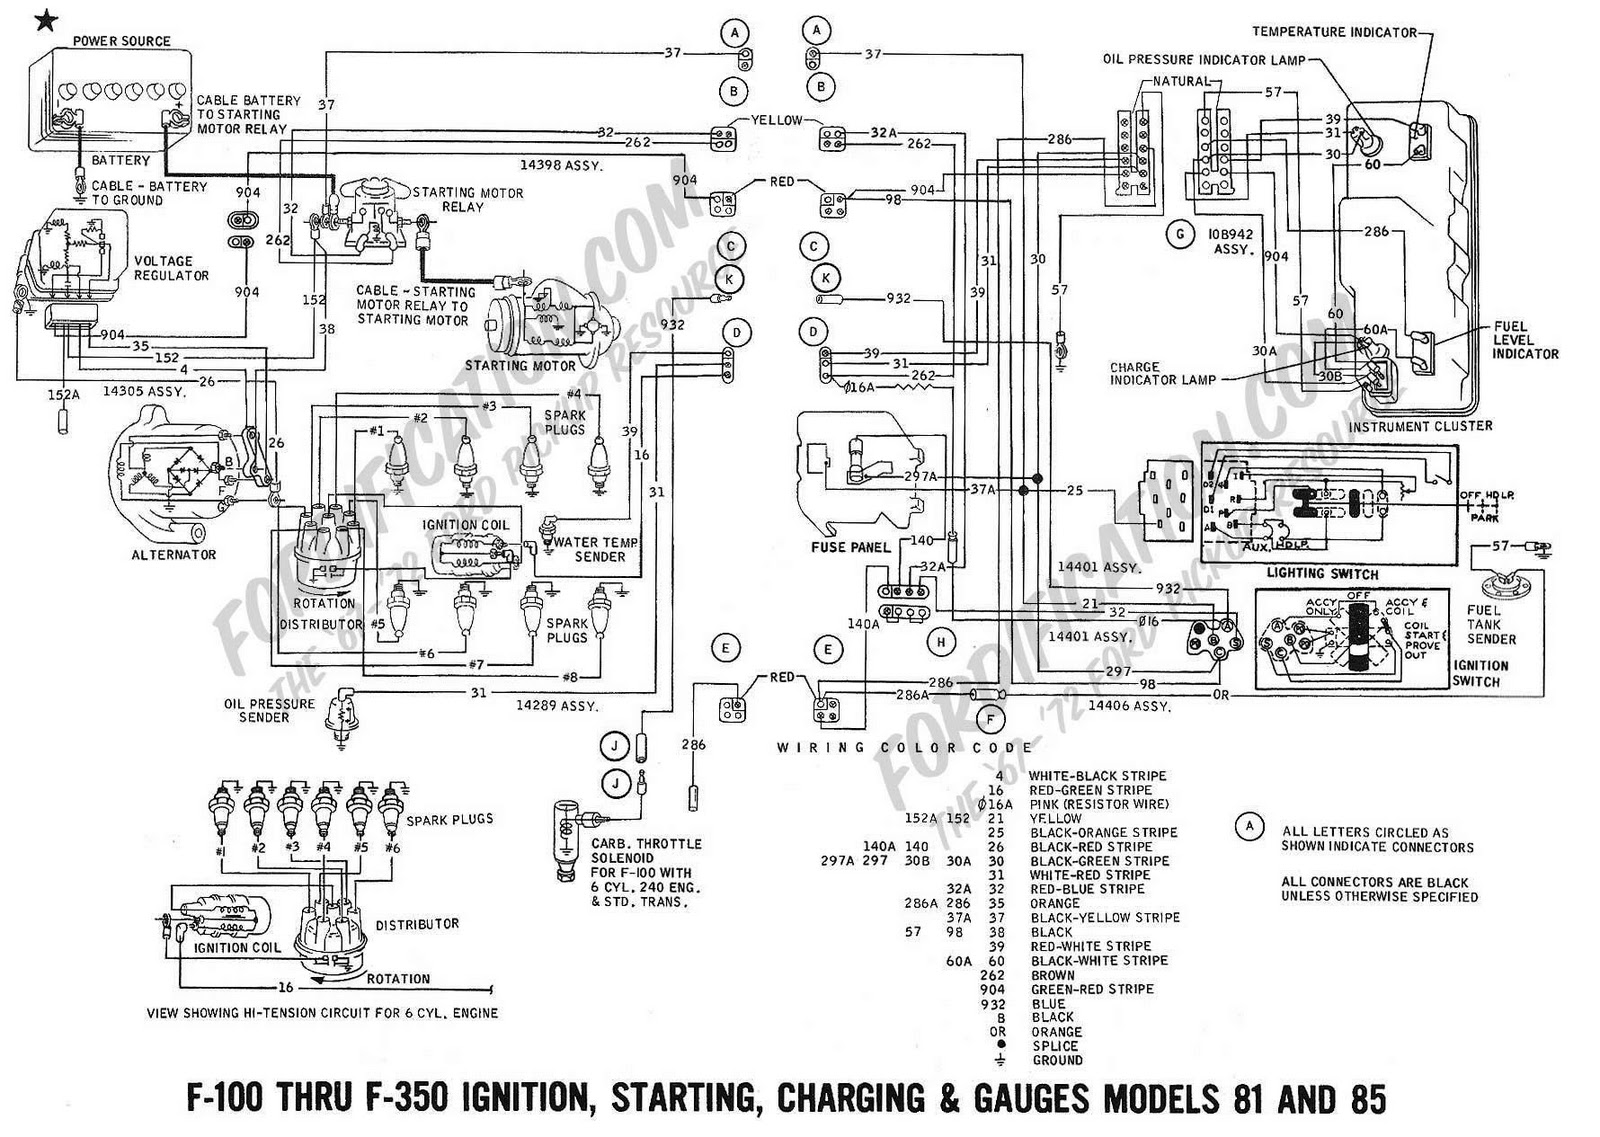 1969 Ford F100 F350 Ignition Starting in addition Moog Packagedeal105 furthermore Volvo C70 Parts Diagram also RepairGuideContent likewise Wiring Diagram For Ignition System 1969 Ford Ltd New Ford Truck Technical Drawings And Schematics Section H Wiring. on 70 chevy steering column diagram